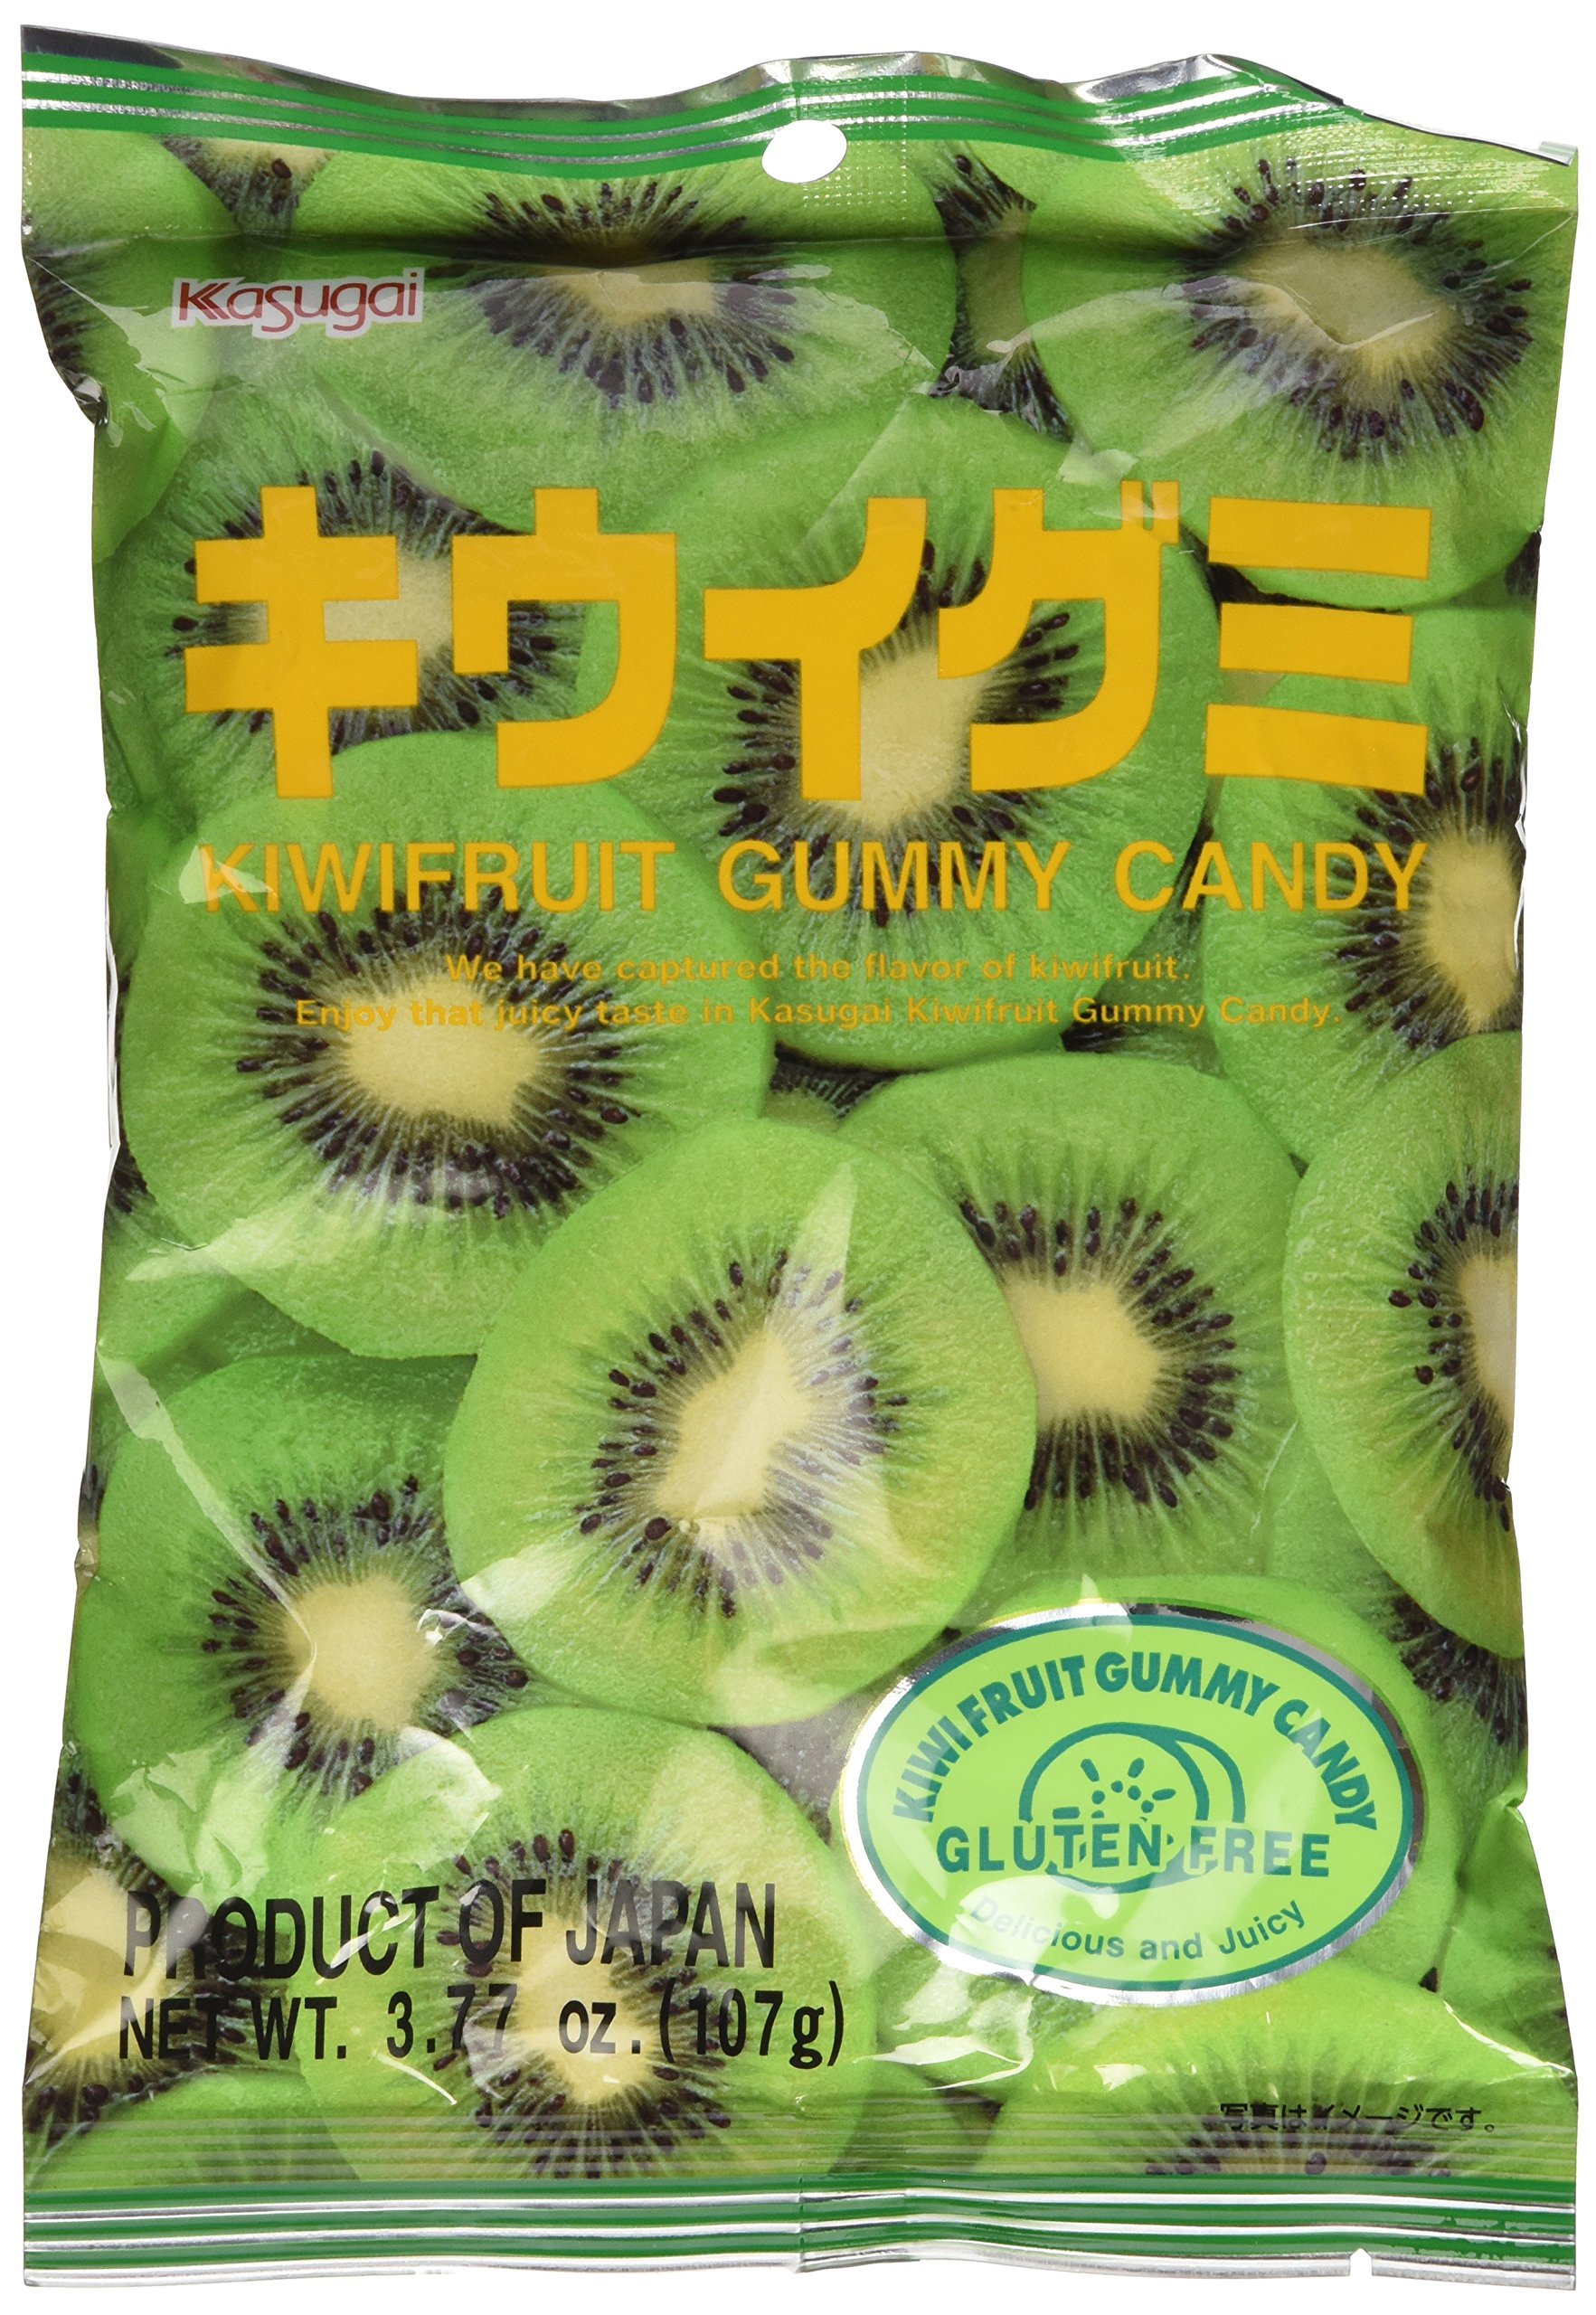 Japanese Fruit Gummy Candy from Kasugai - Kiwi - 107g